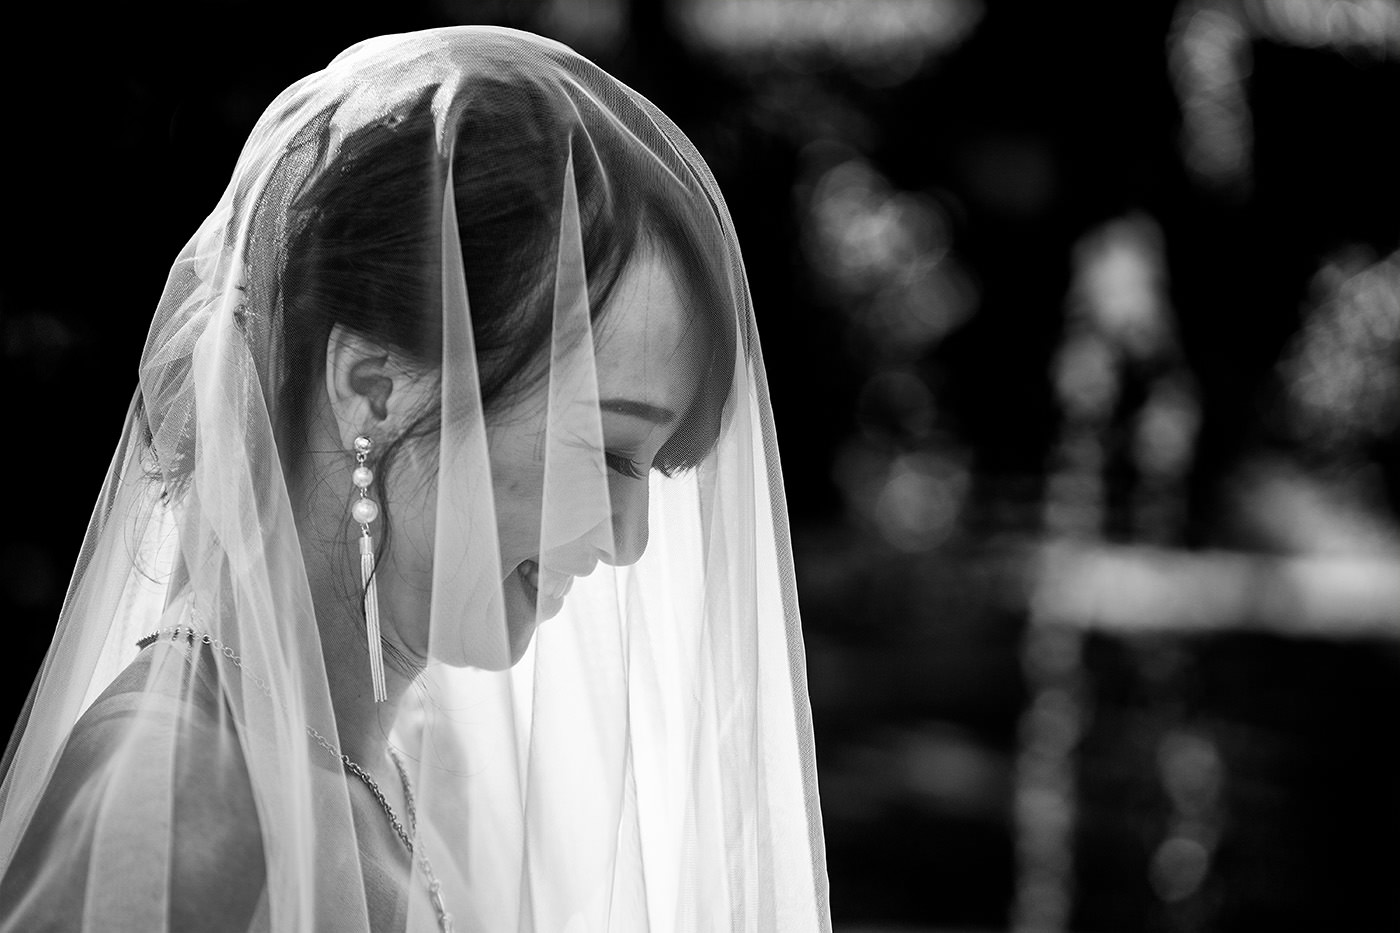 Duccio Argentini: Professional Wedding Photographer in Florence